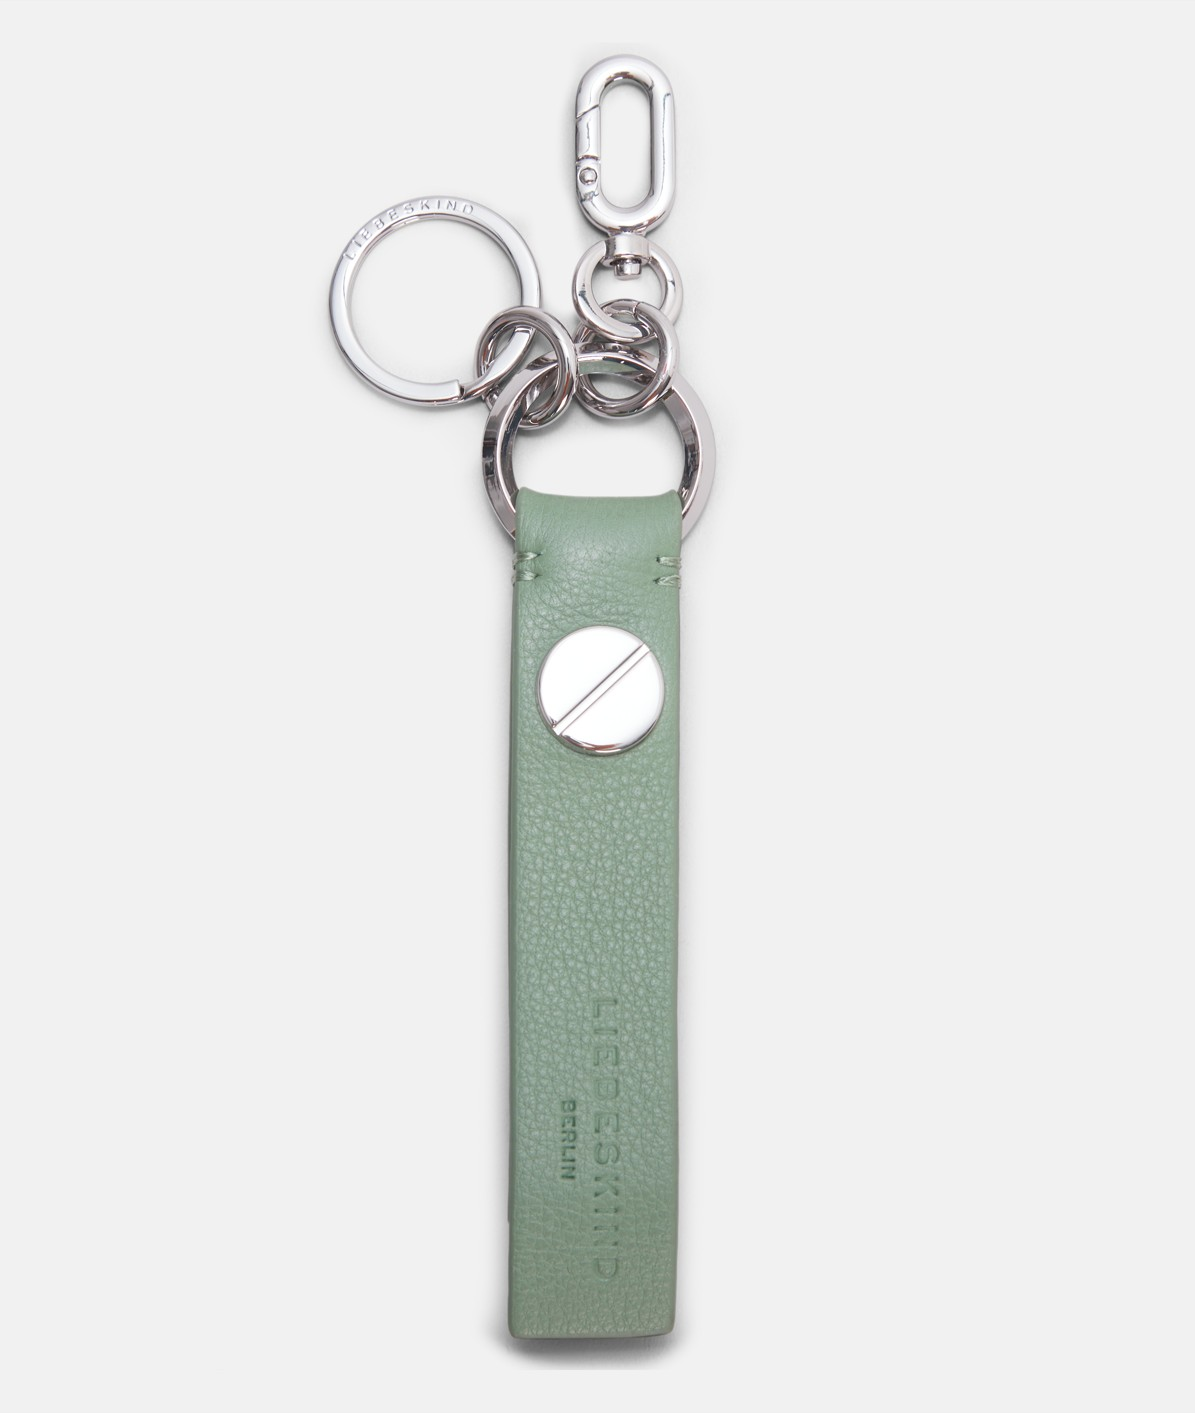 Key ring with a leather fob from liebeskind